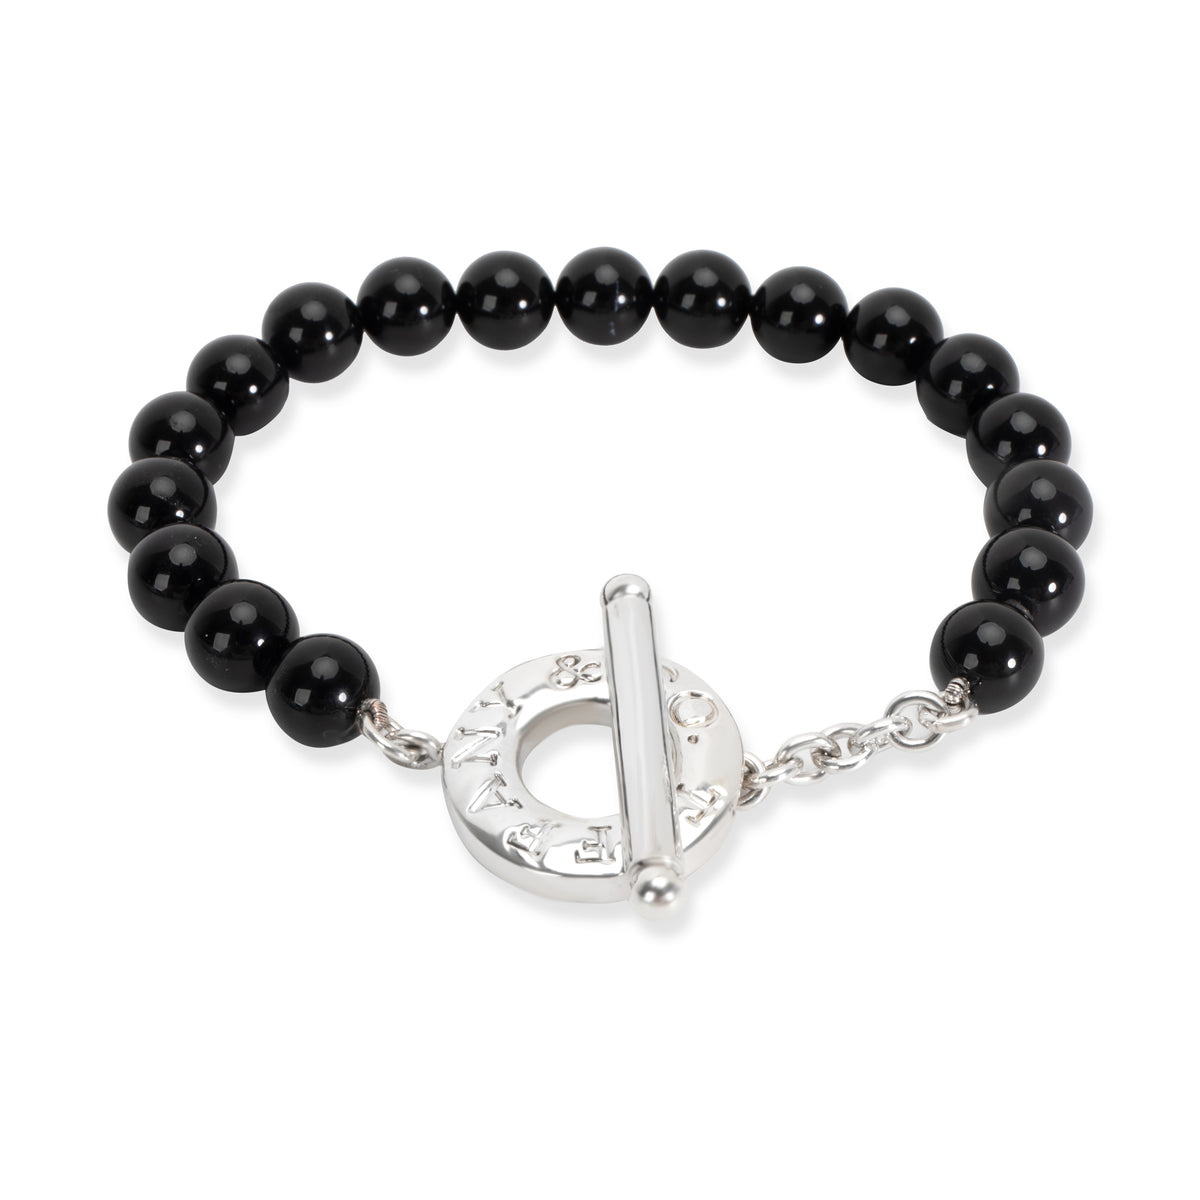 Tiffany & Co. Black Onyx Bead Bracelet in Sterling Silver